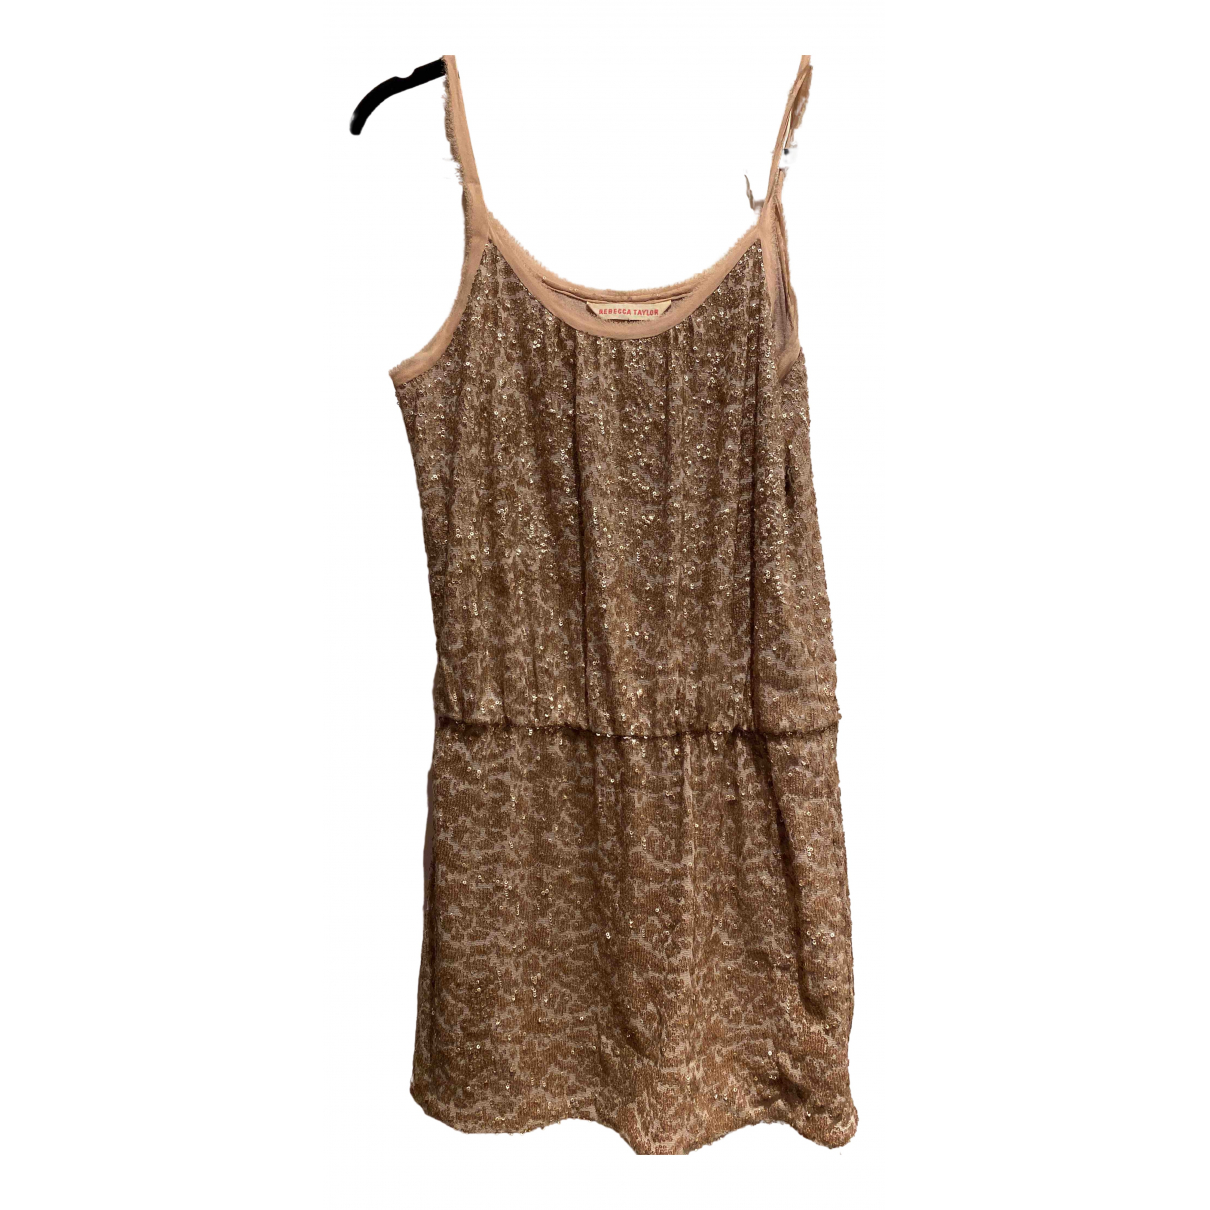 Rebecca Taylor N Gold Glitter dress for Women 8 US